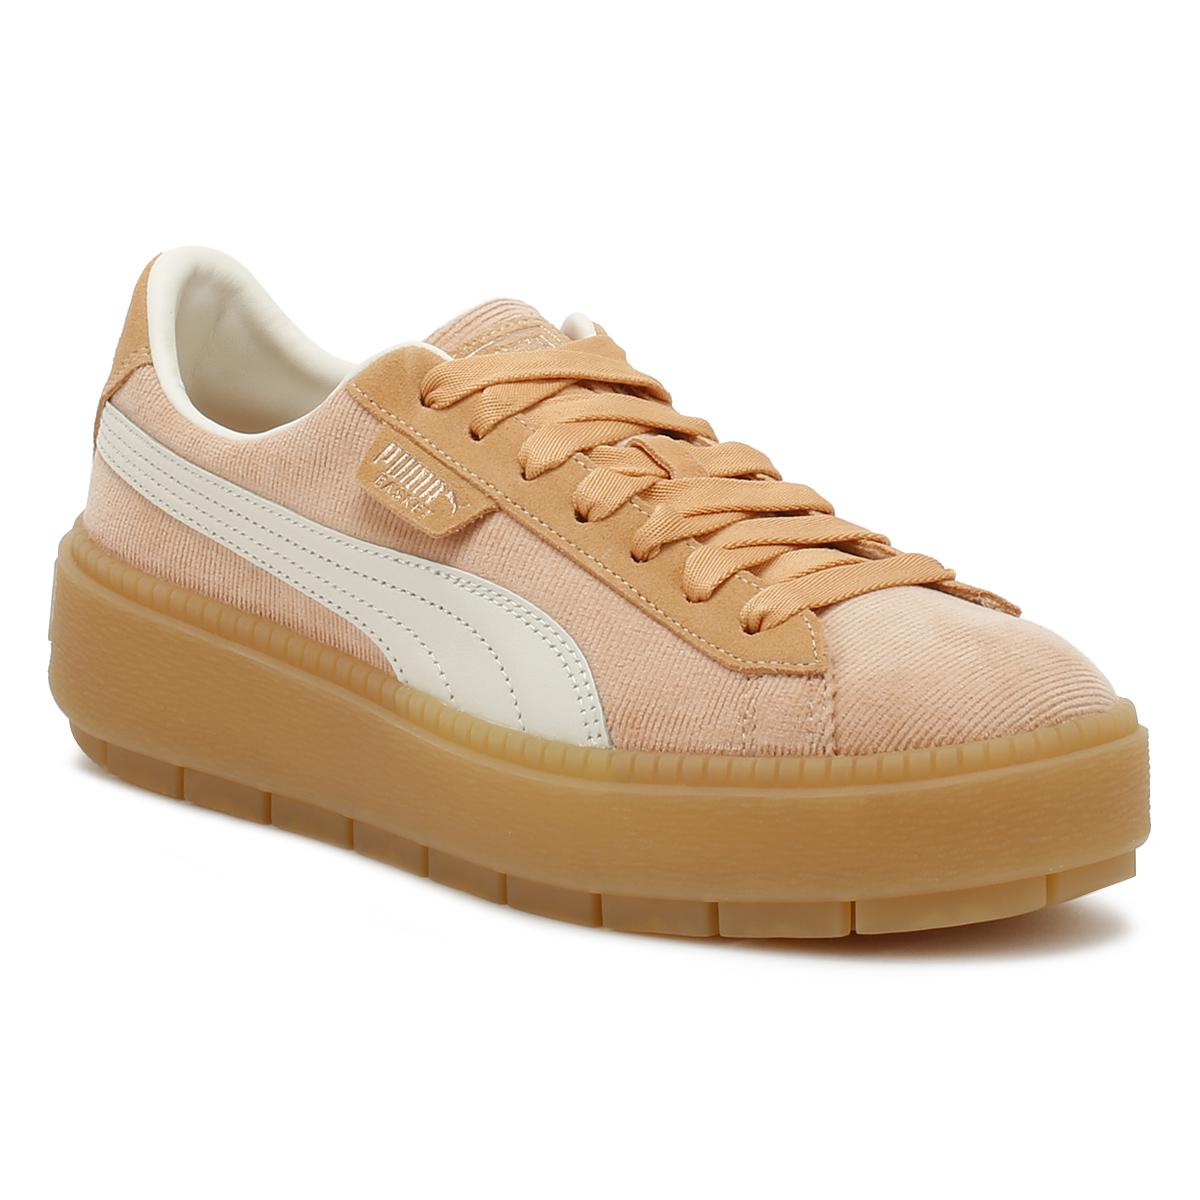 5b5b121cbe9d4a Lyst - PUMA Womens Dusty Coral Corduroy Trace Platform Trainers in ...